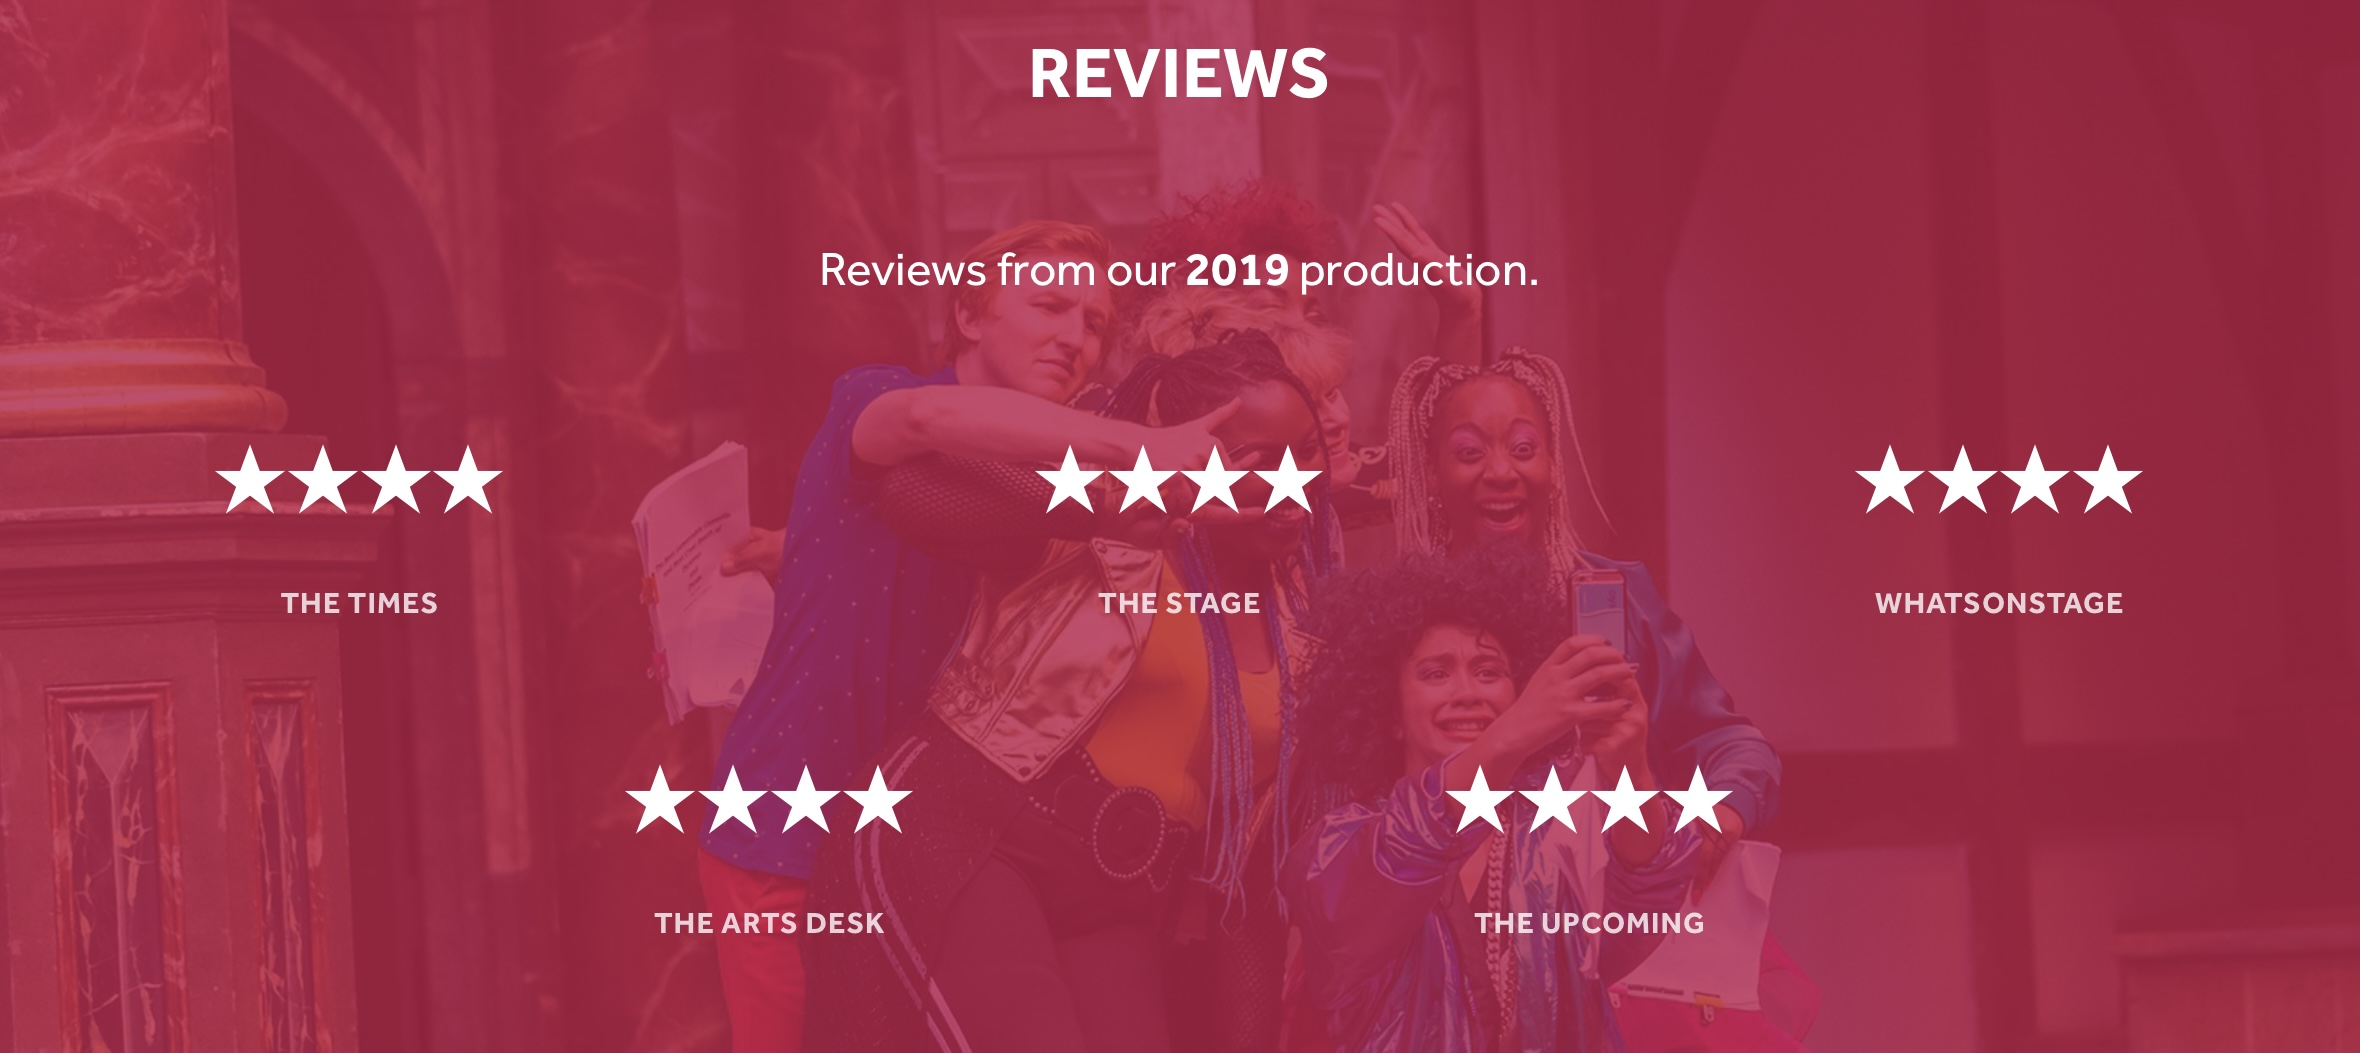 A pink image has reviews written across it, all of them four star